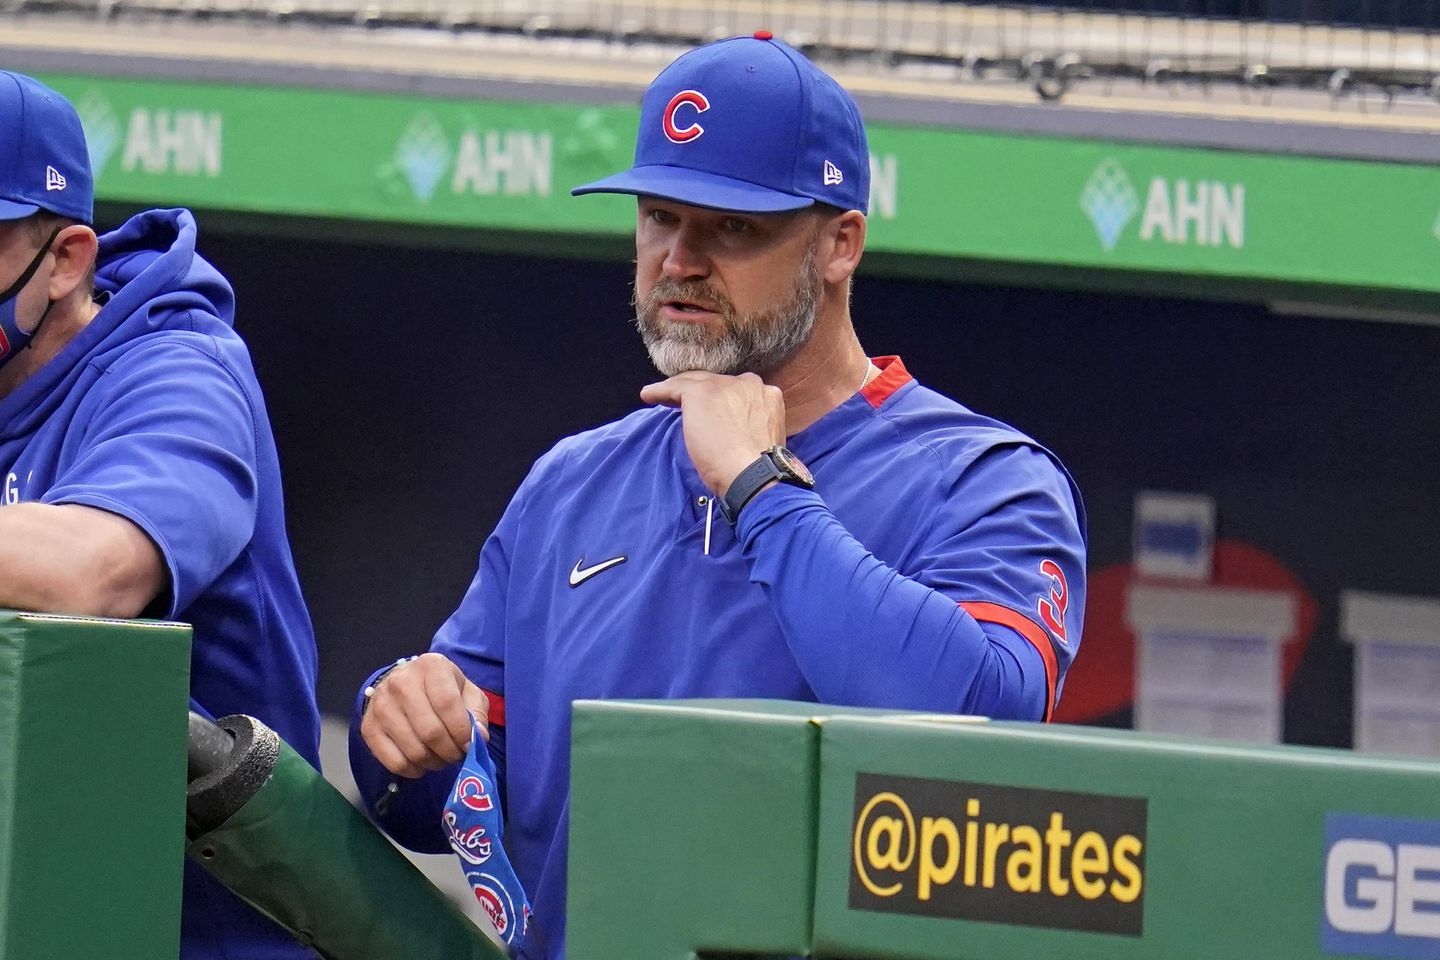 Ross says no Cubs players have tested positive for COVID-19